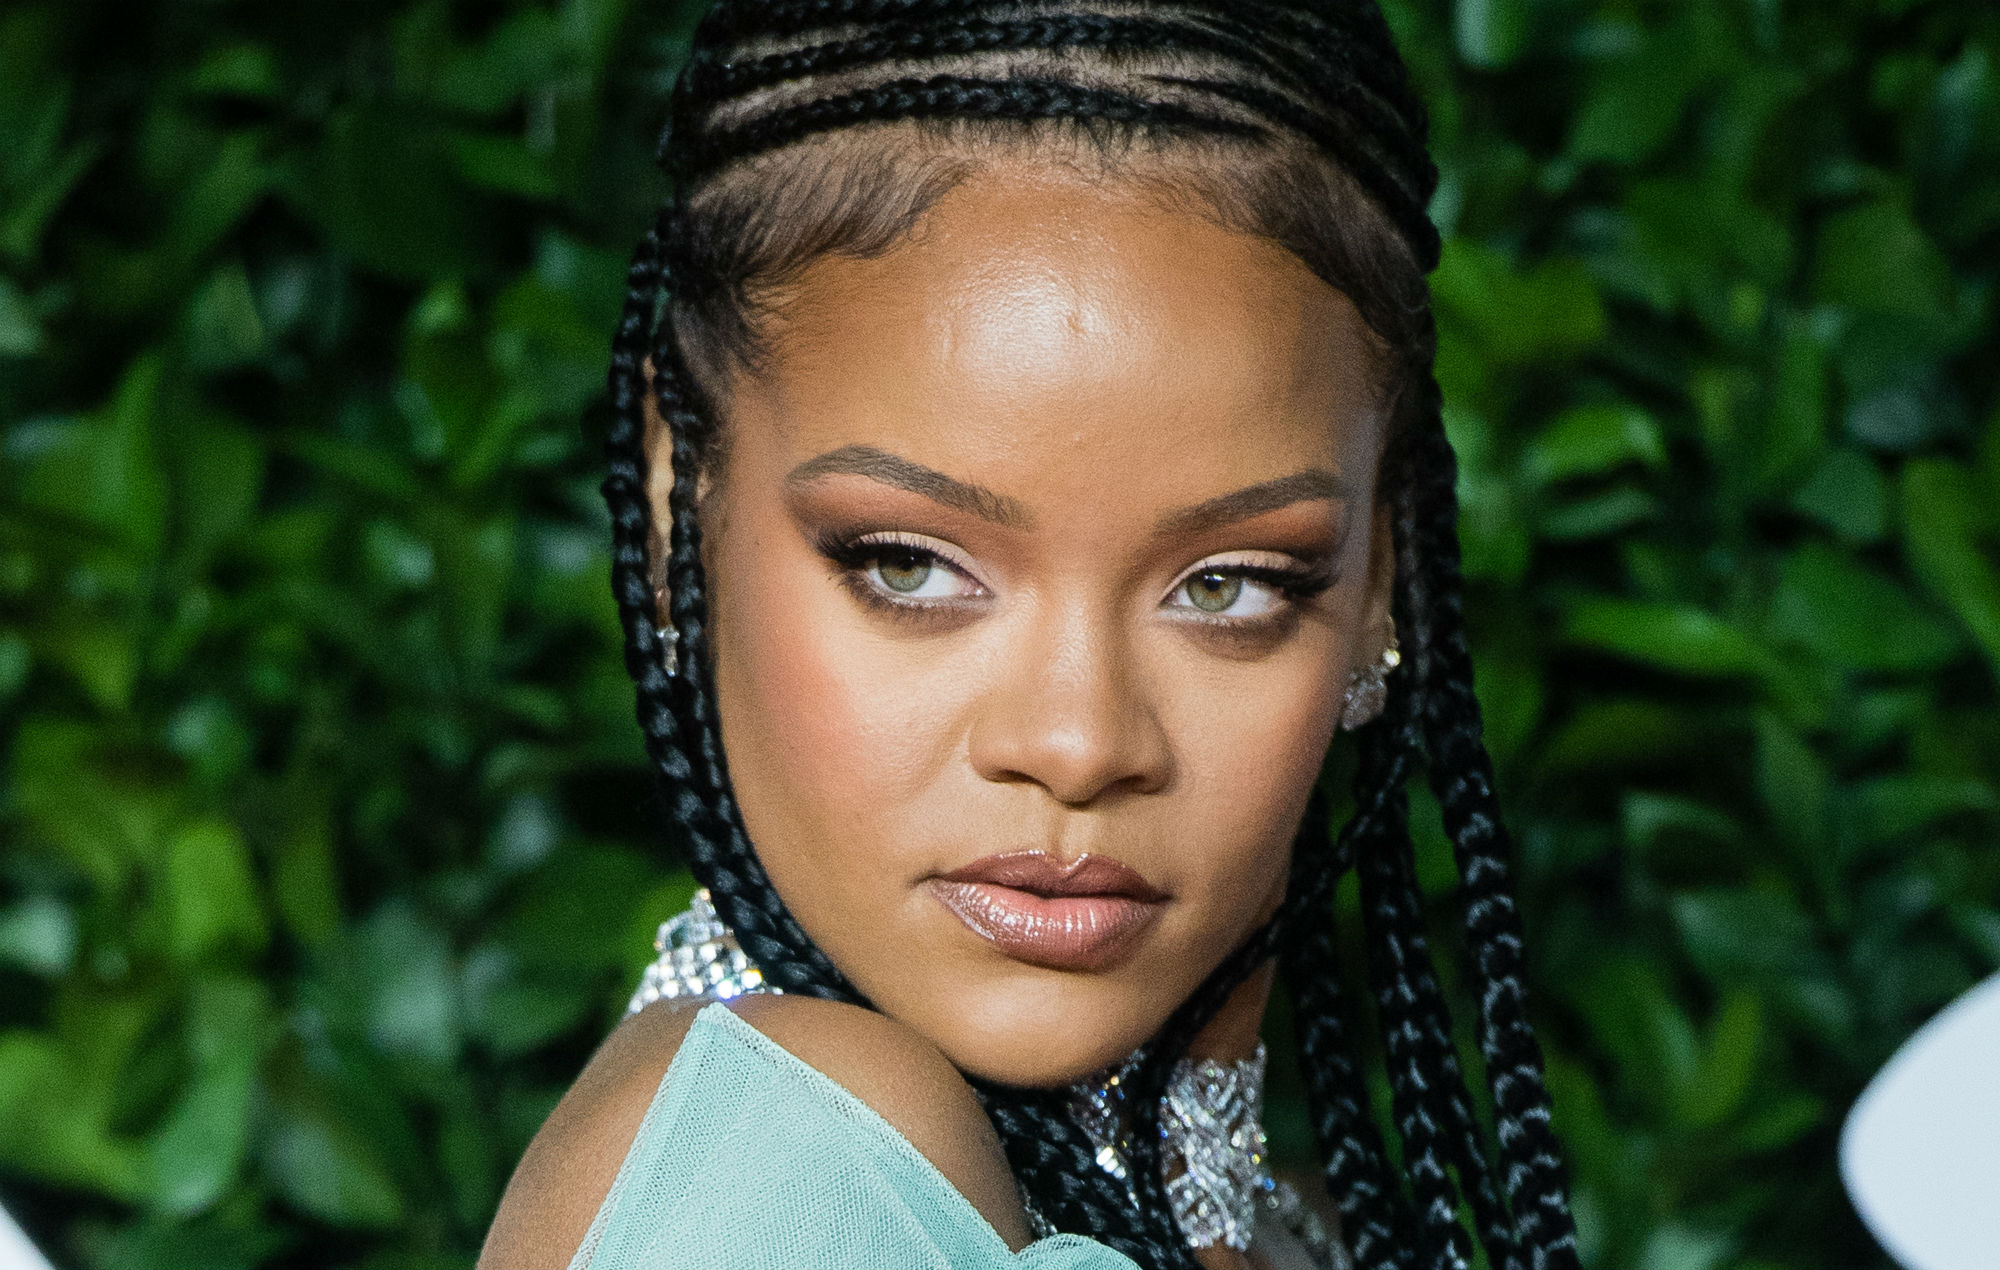 Rihanna Looks Sultry And Mysterious In A Sheer New Lingerie Set From Her Collection – Check It Out!